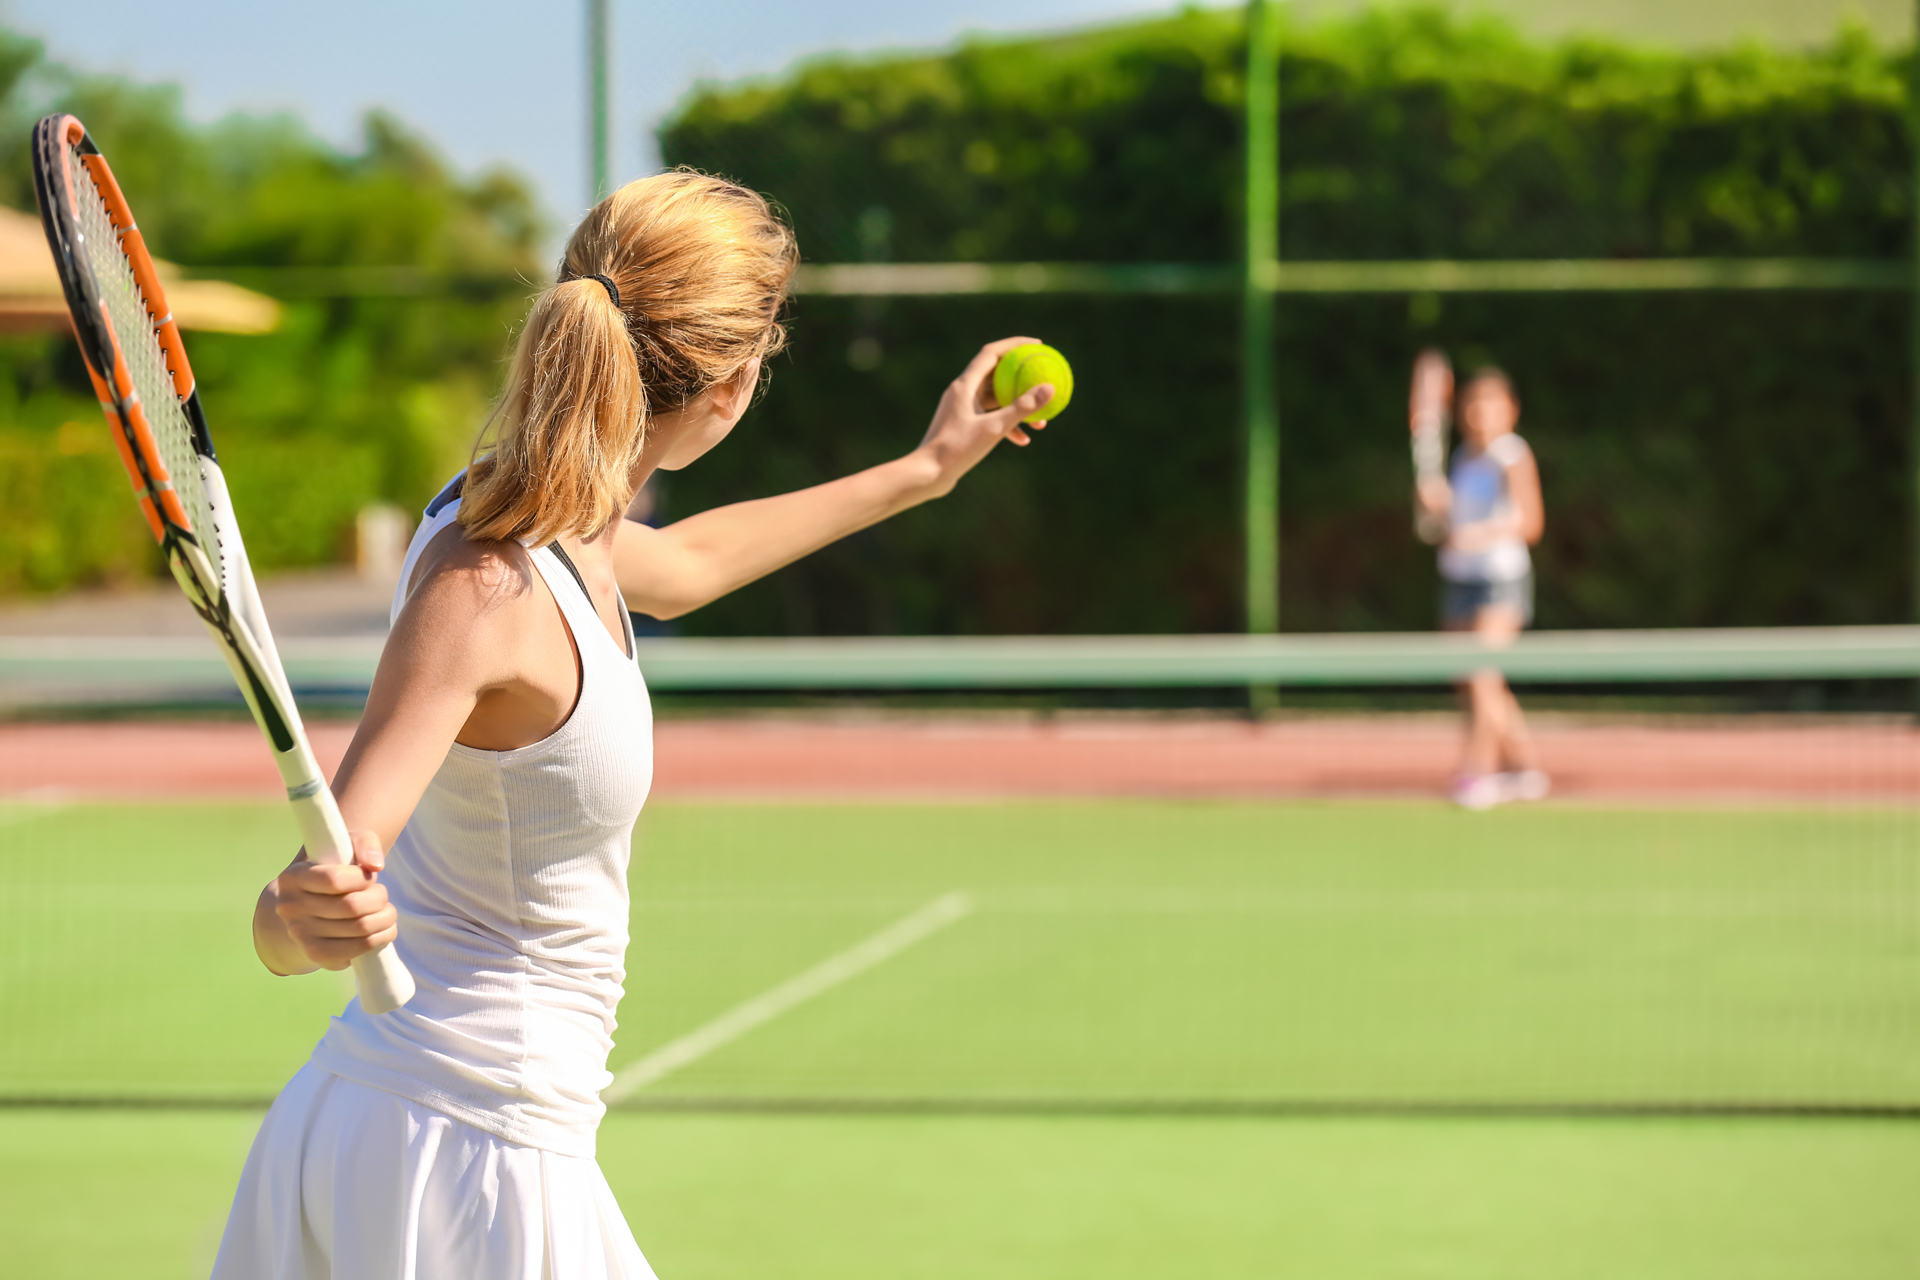 tennis Staying Active Outdoors This Summer